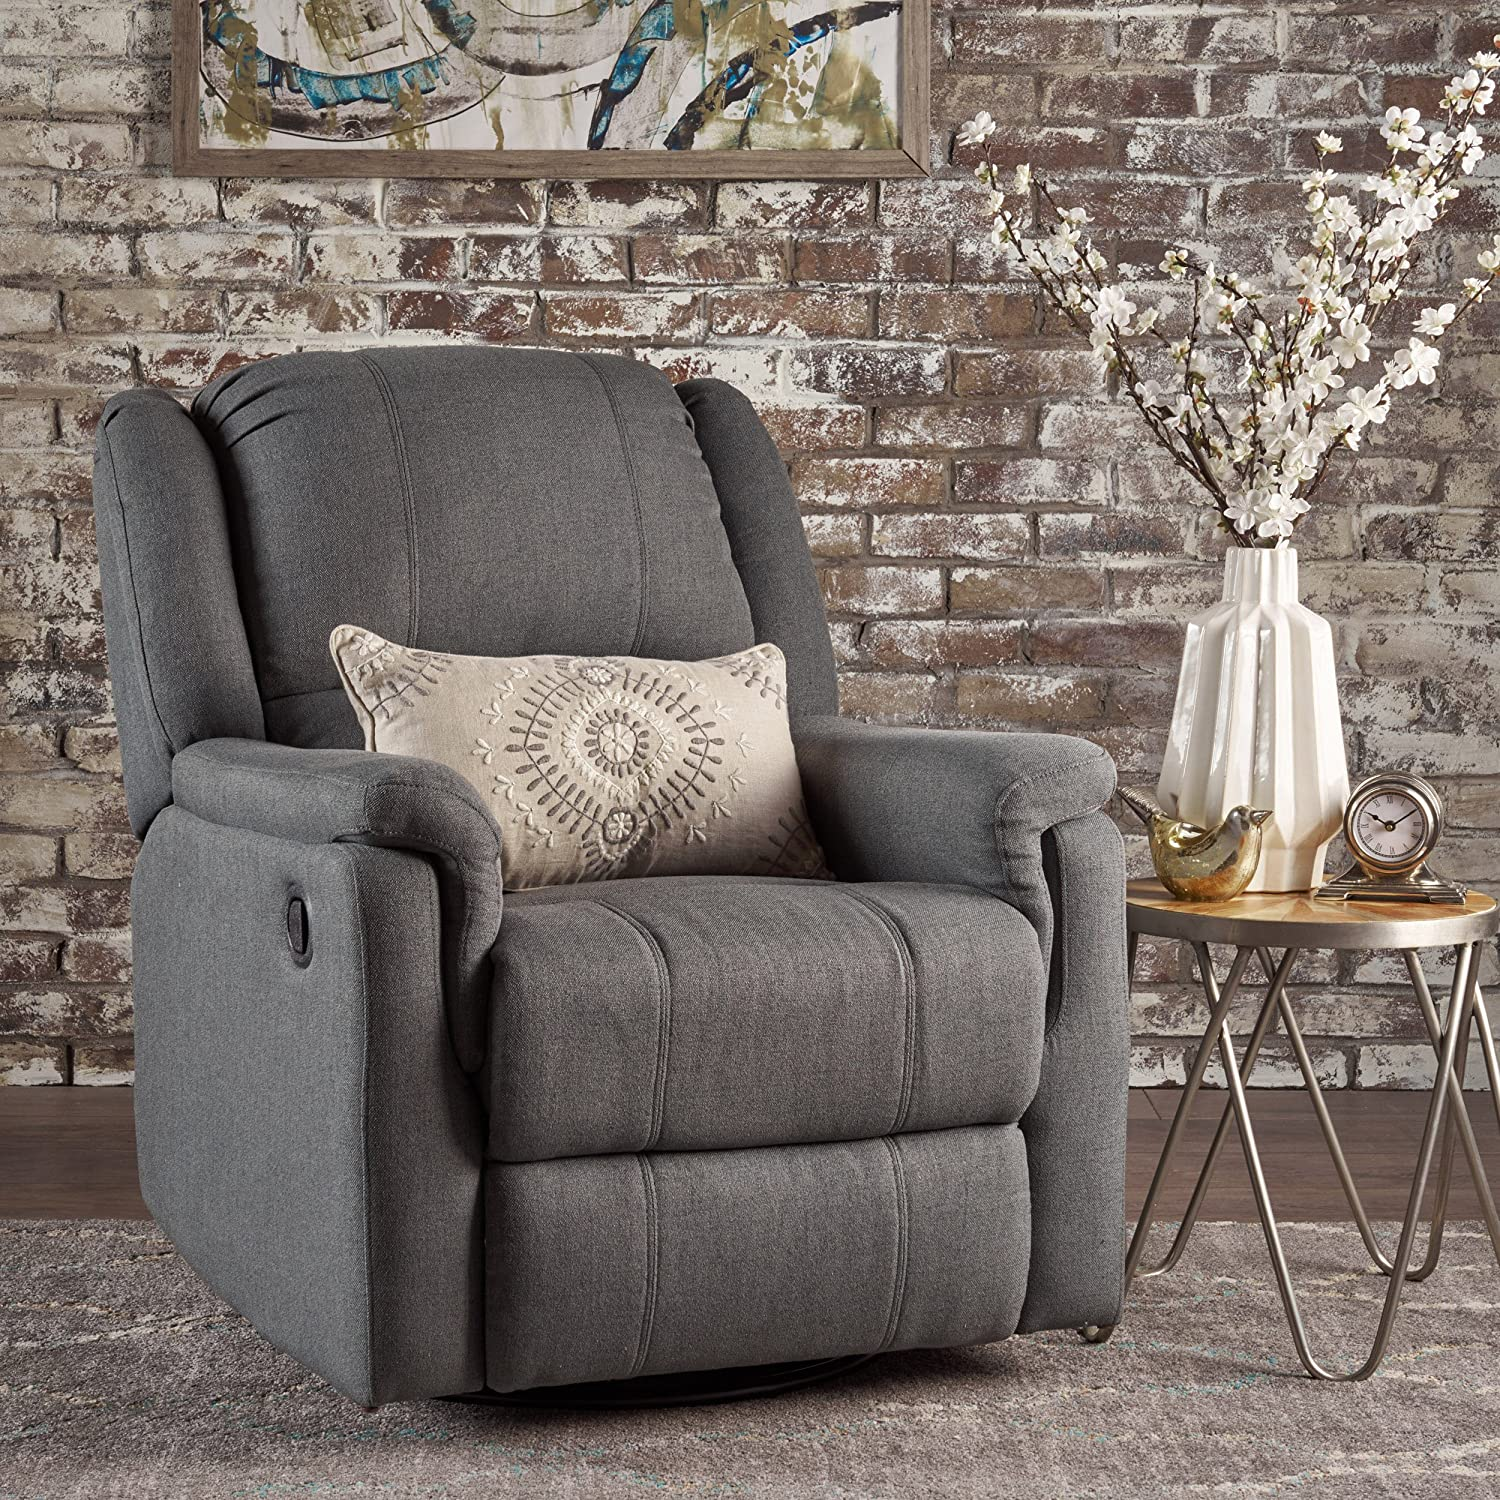 Christopher Knight Home 302057 Jemma Swivel Gliding Recliner Chair Charcoal